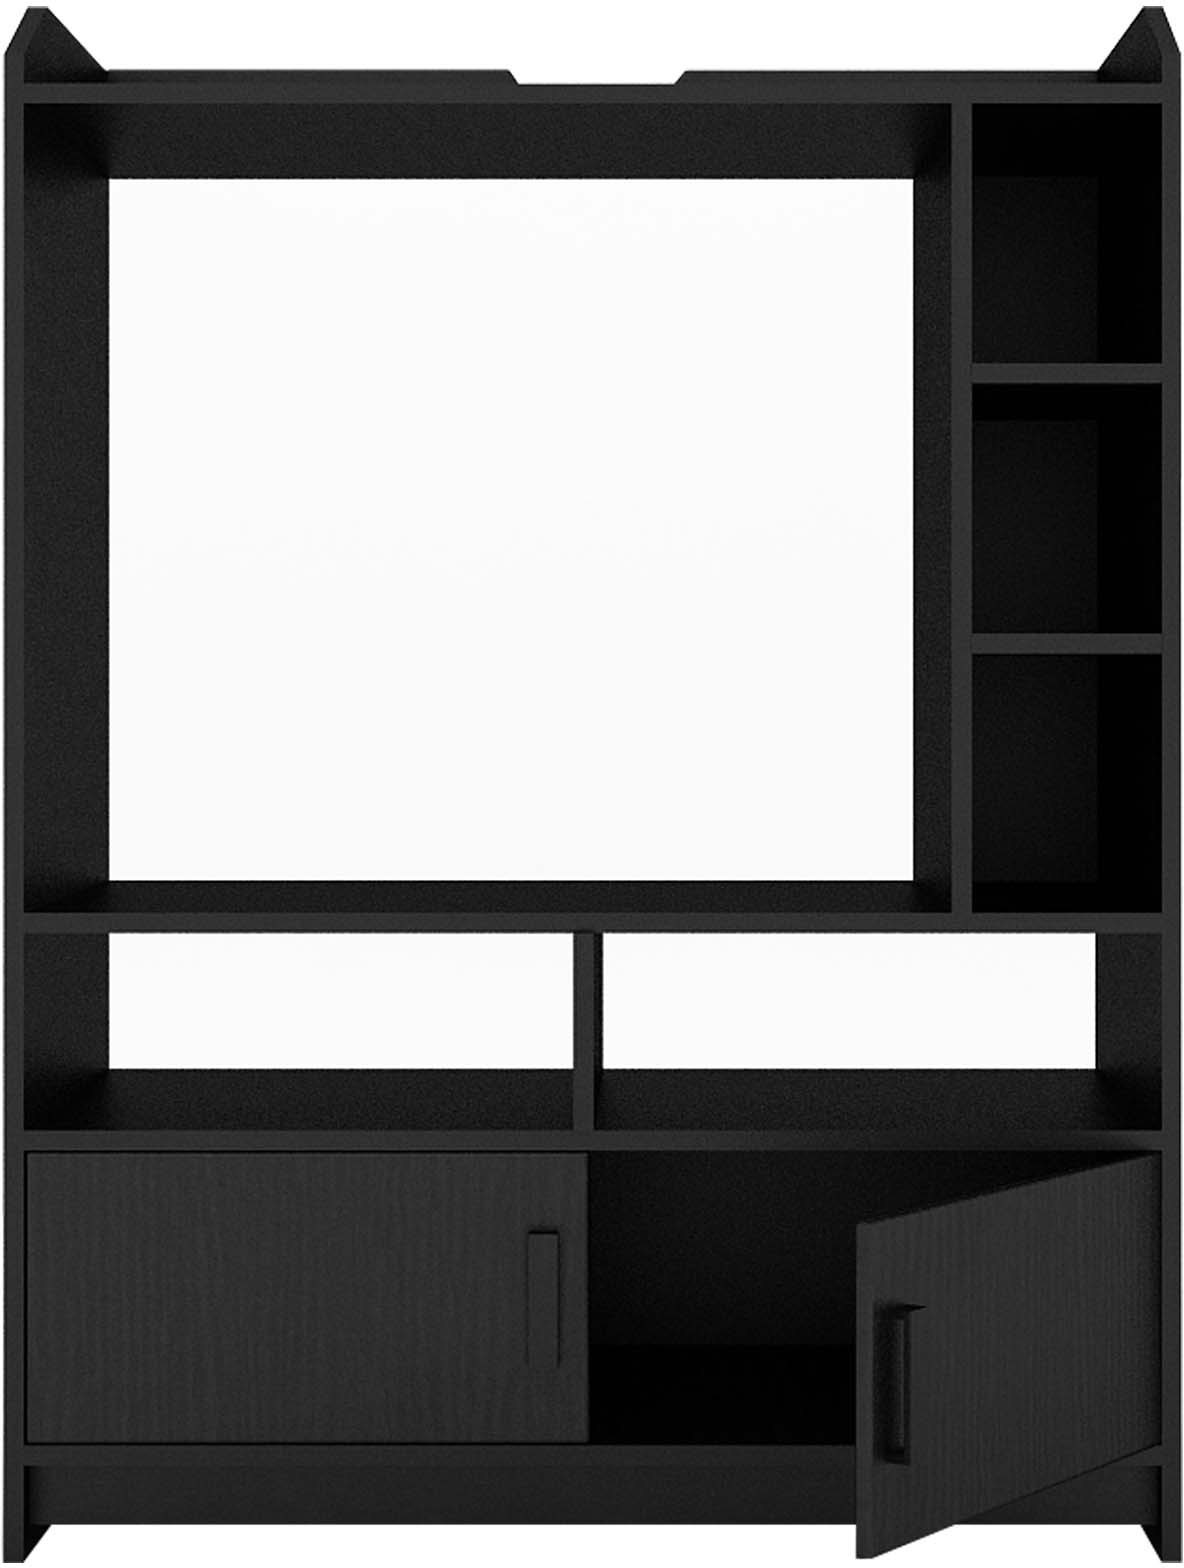 Deals - Living Room TV Cabinets